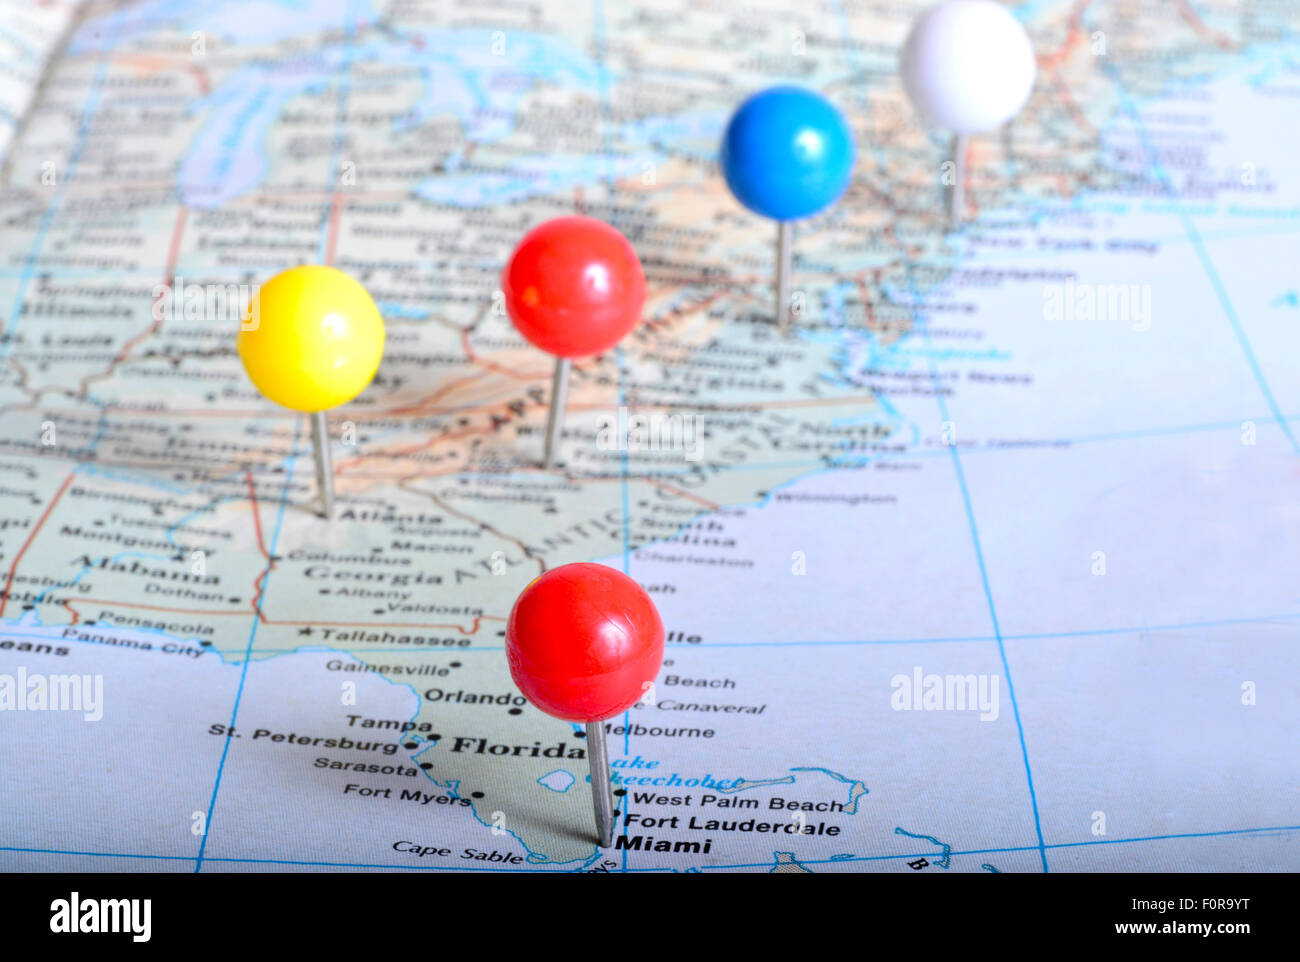 Image of: Map Of Eastern Us With Pin Tags On It Placed On Major Cities Stock Photo Alamy